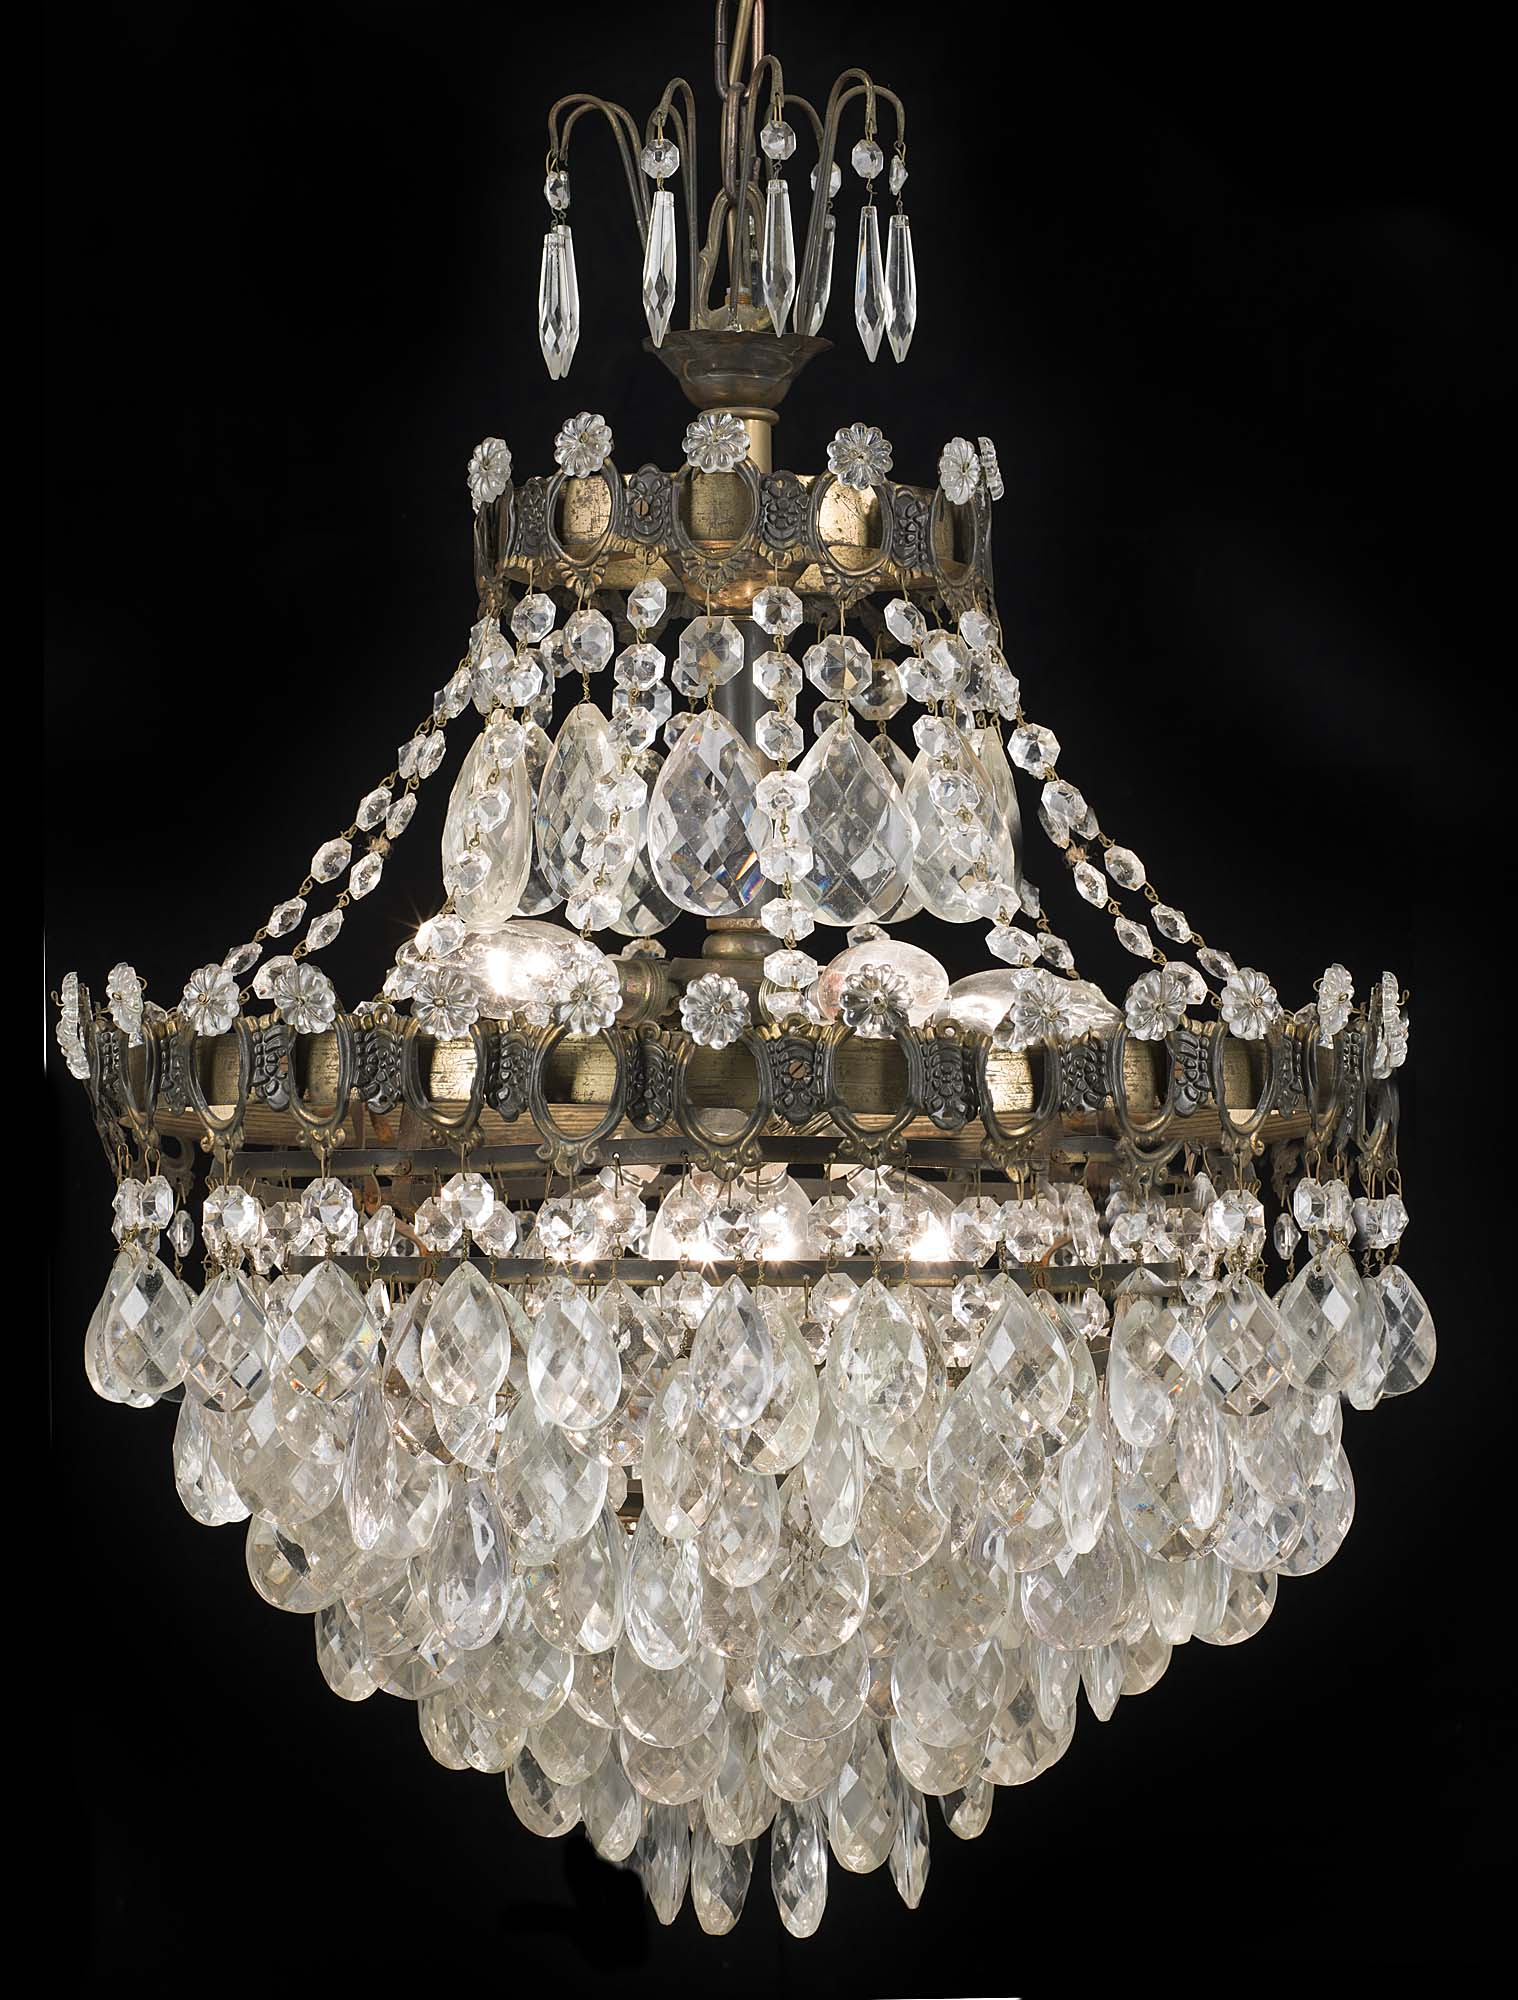 A large Edwardian glass and brass bag chandelier